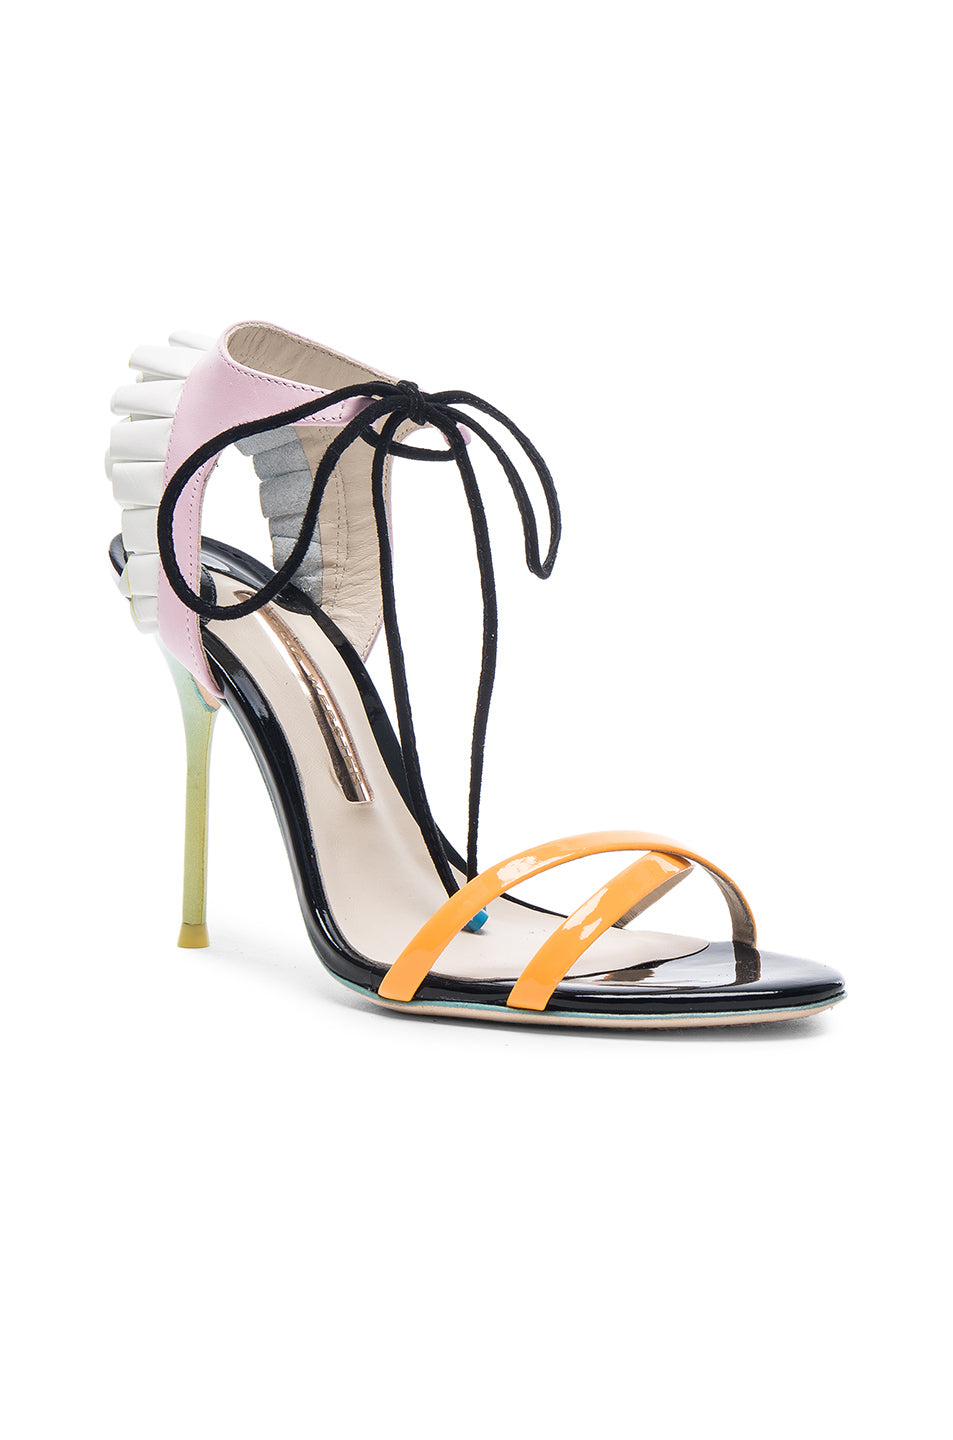 Sophia Webster Sandals,36 - Iconics Preloved Luxury